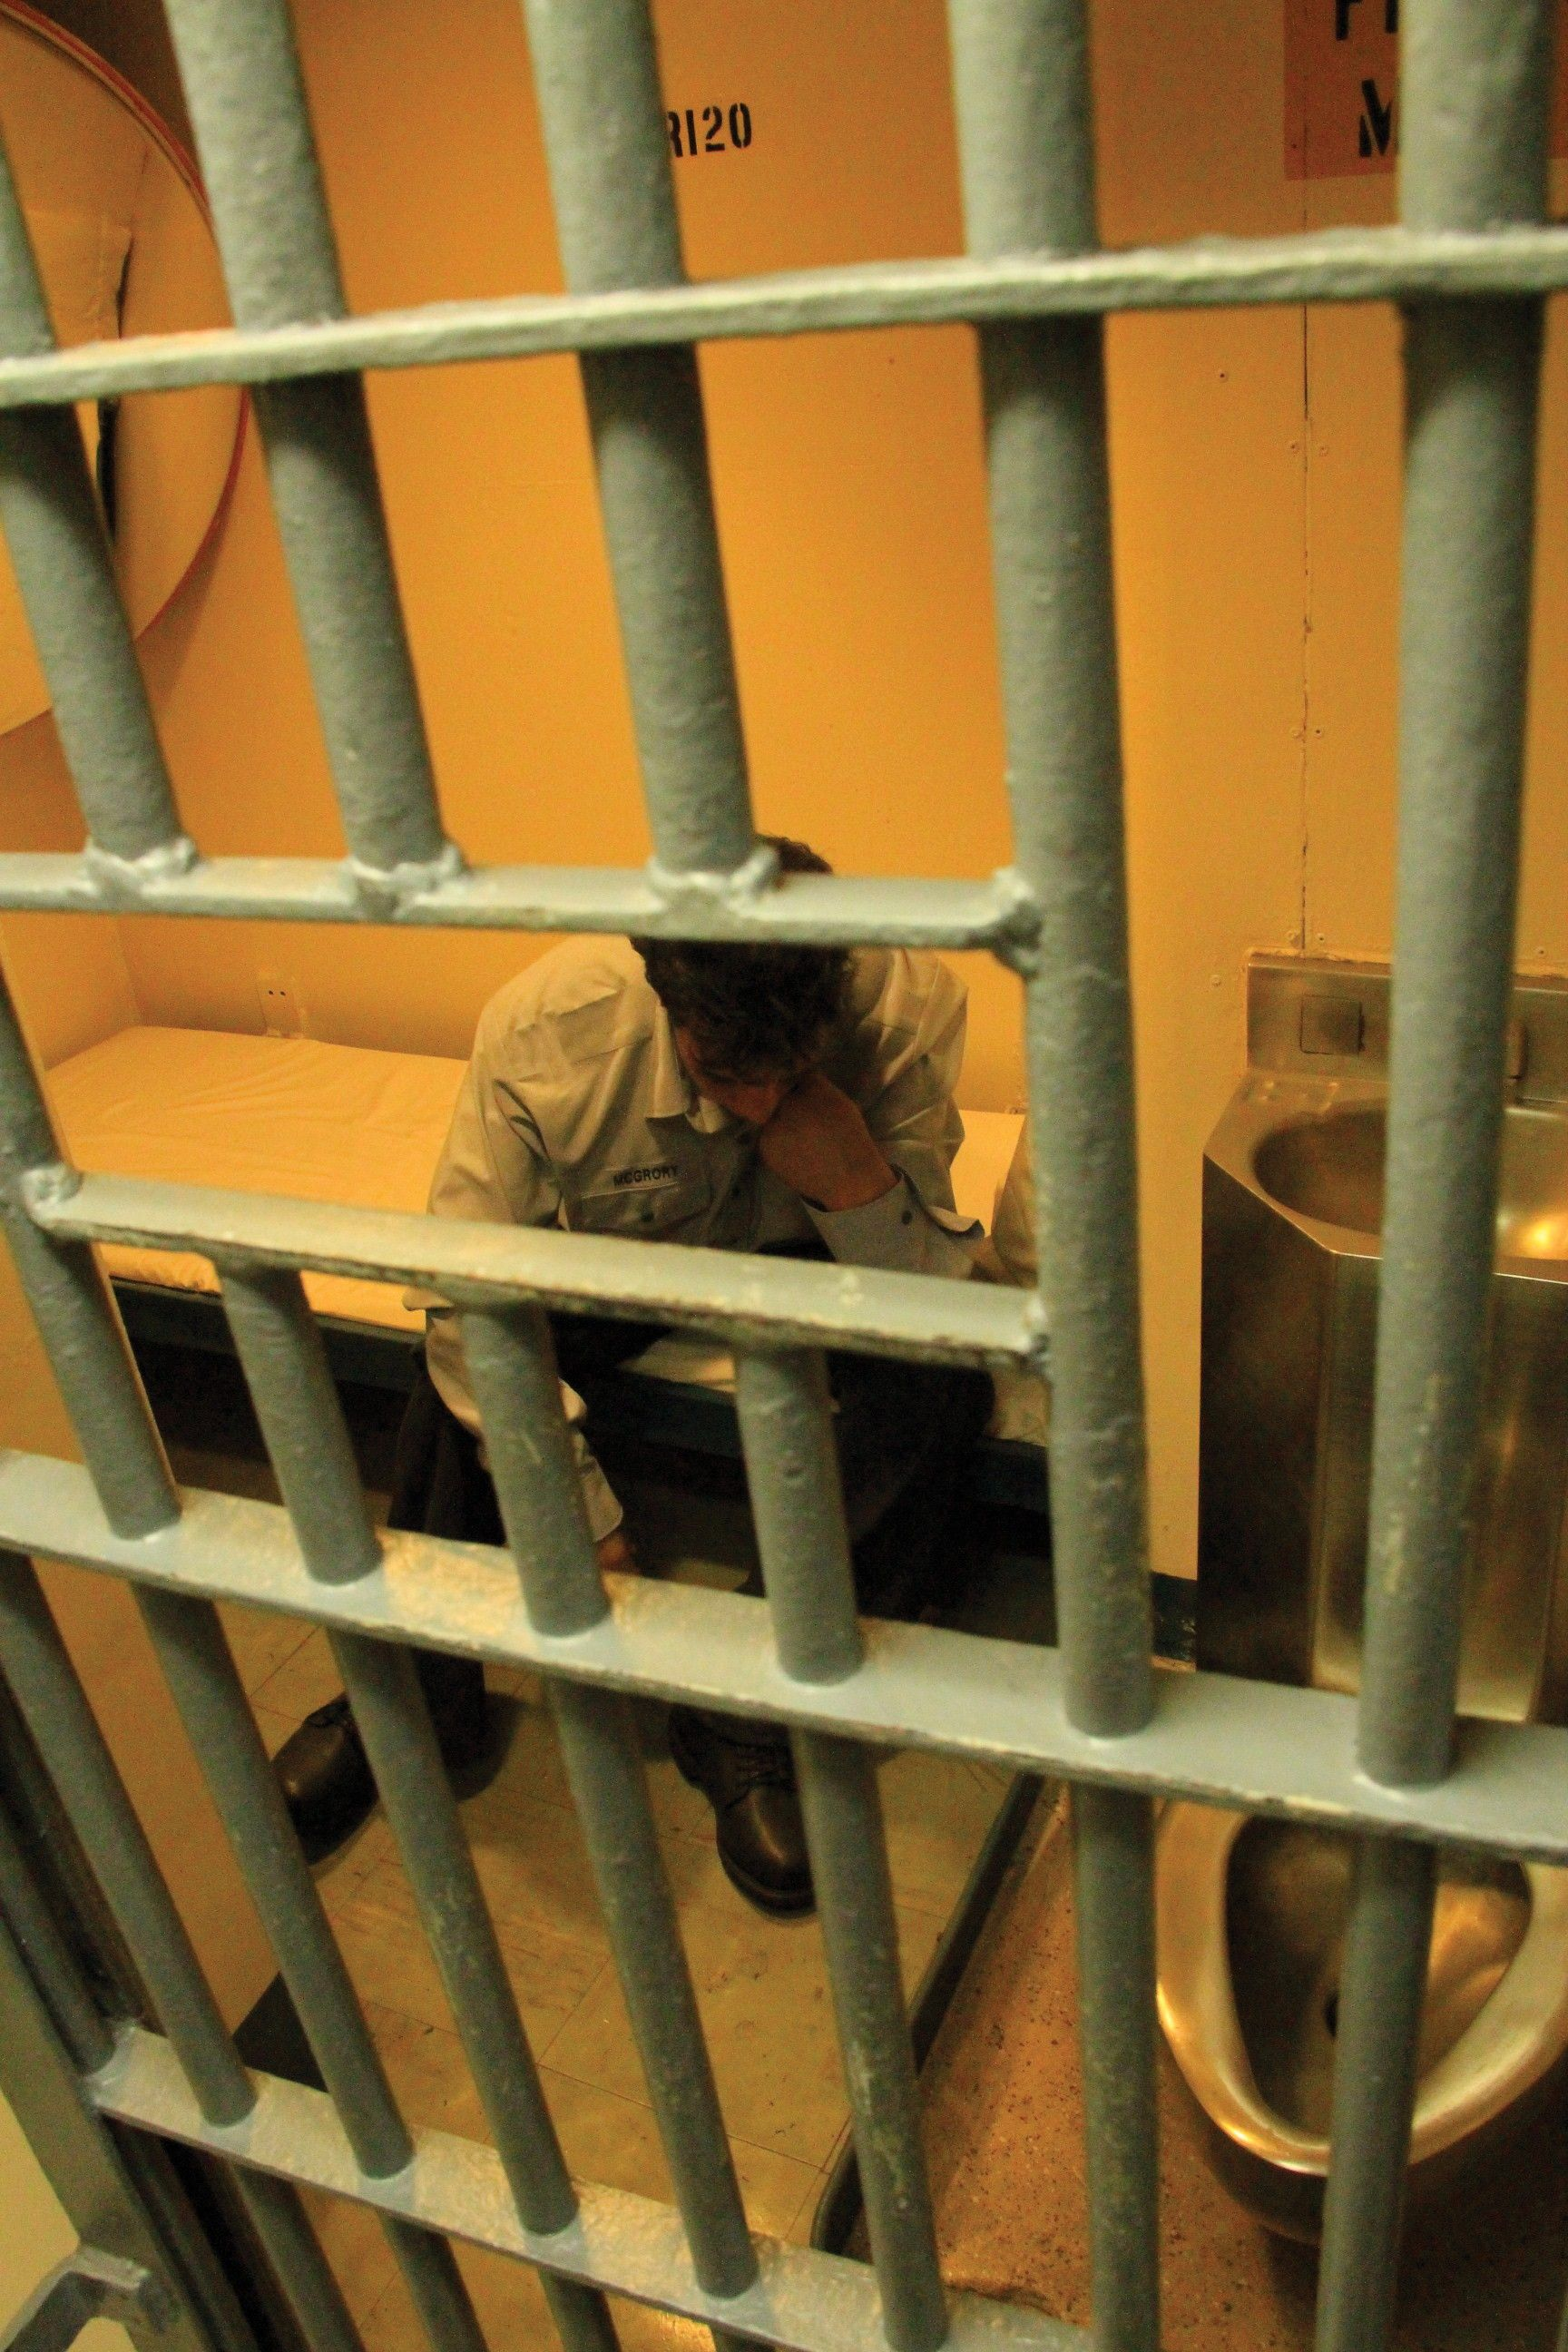 A man sitting in a prison cell looking discouraged.